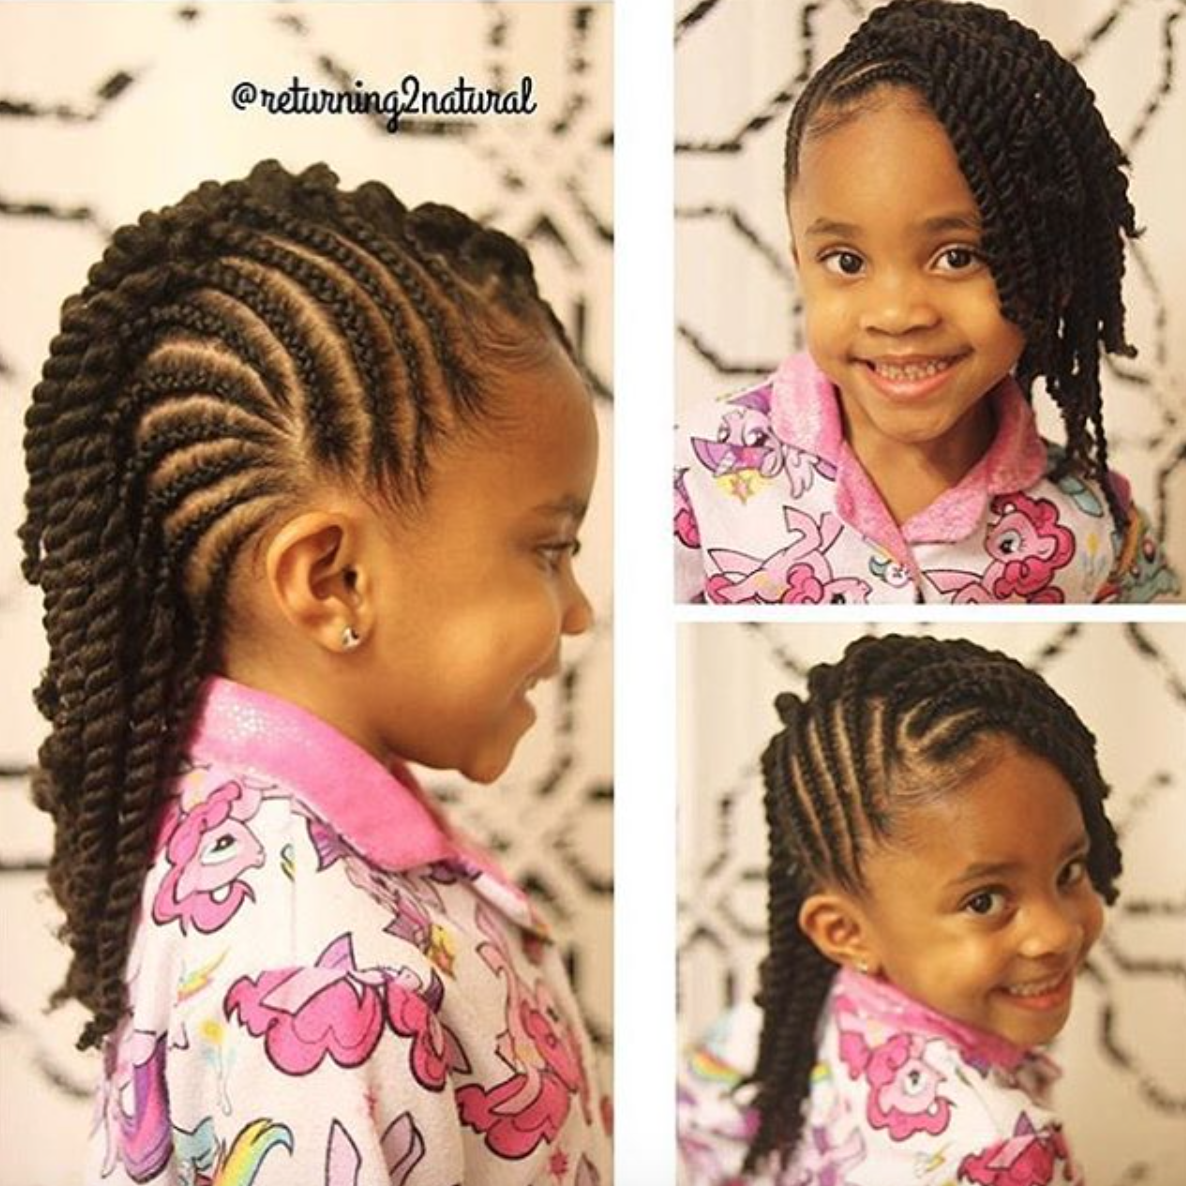 Kids Hairstyles Unique Adorable Returning2Natural  Httpcommunityblackhairinformatio